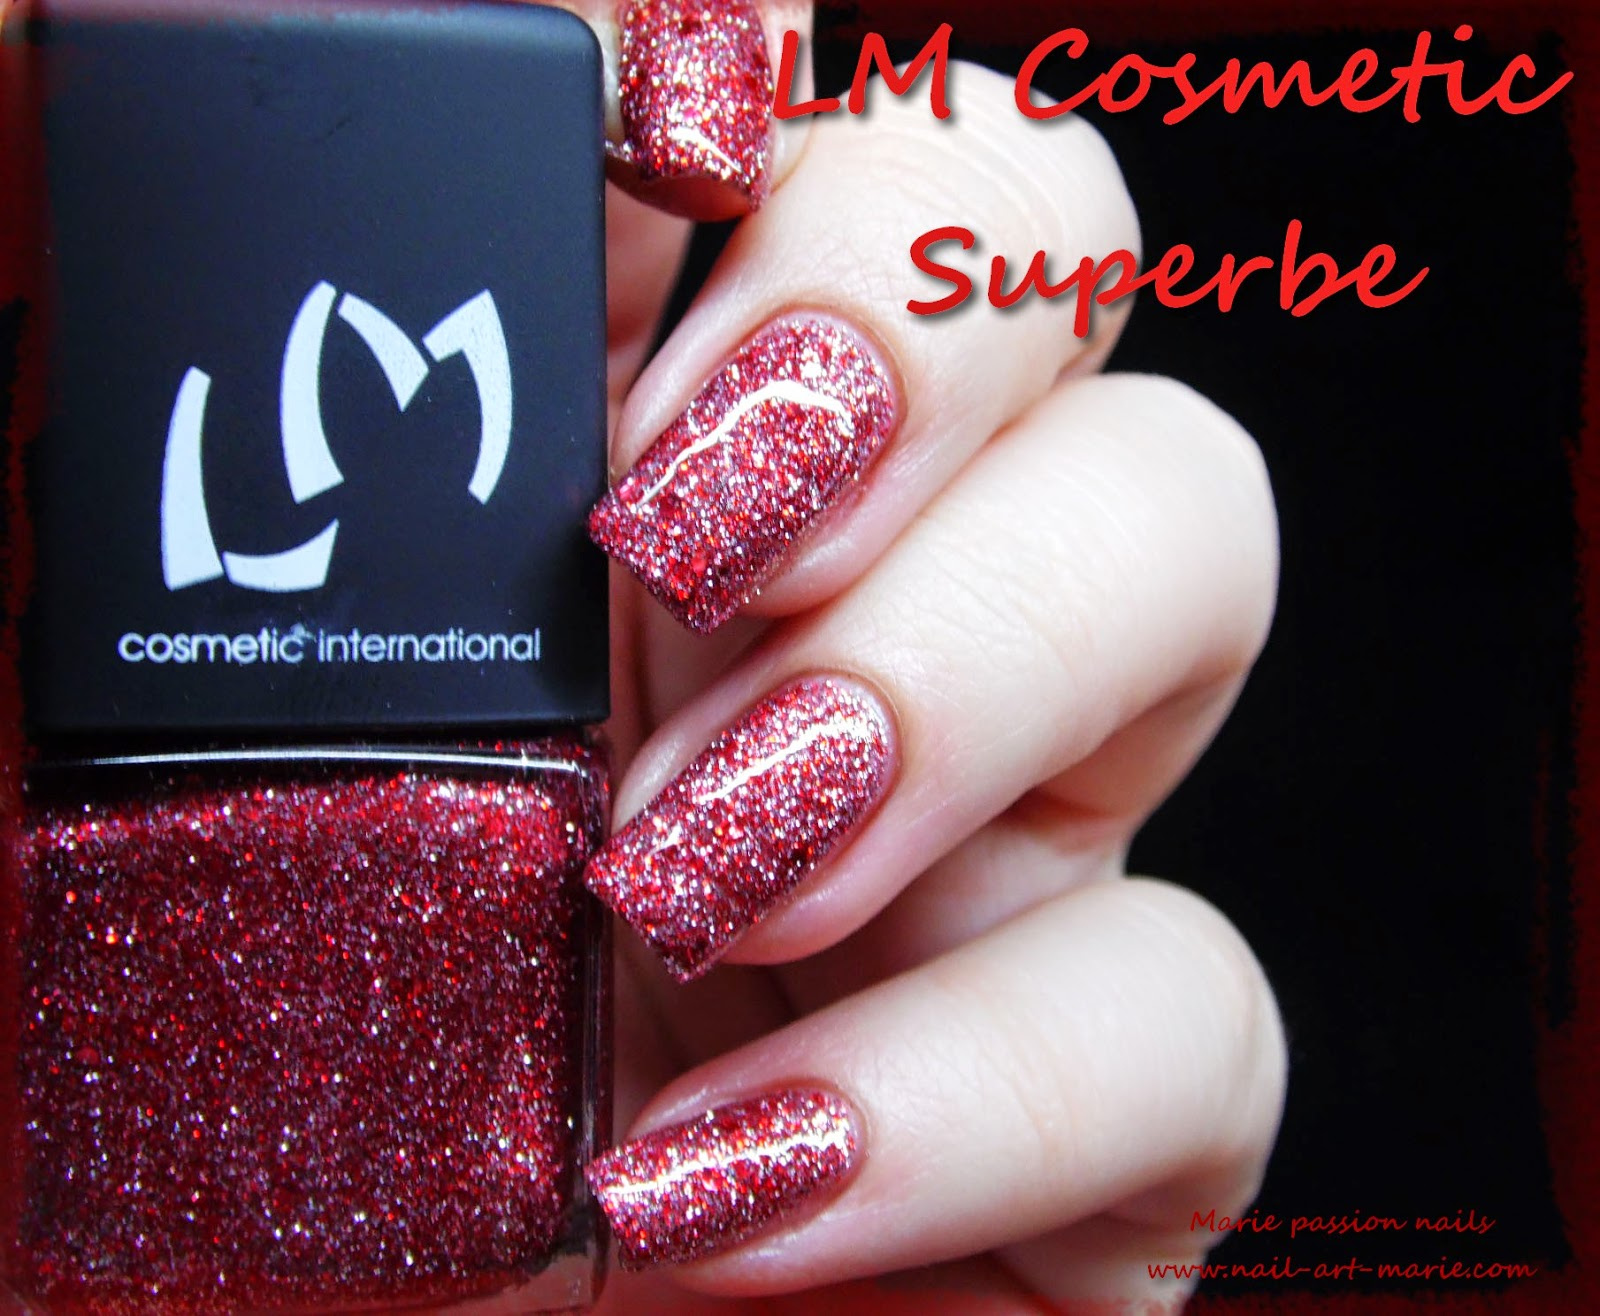 LM Cosmetic Superbe1